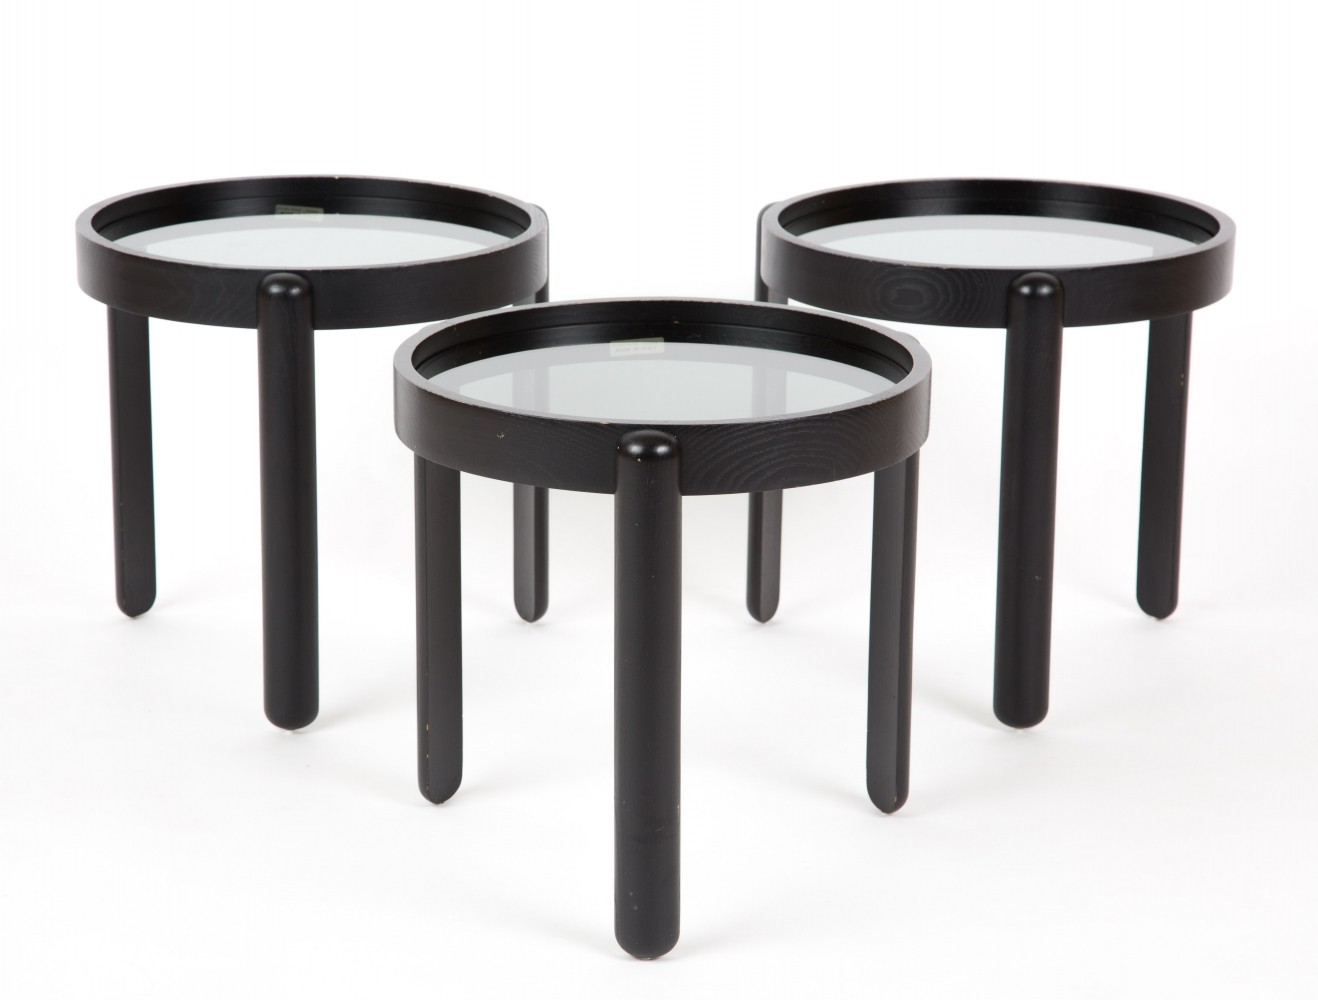 set of 3 porada arredi nesting tables 1970s 61399 On porada arredi